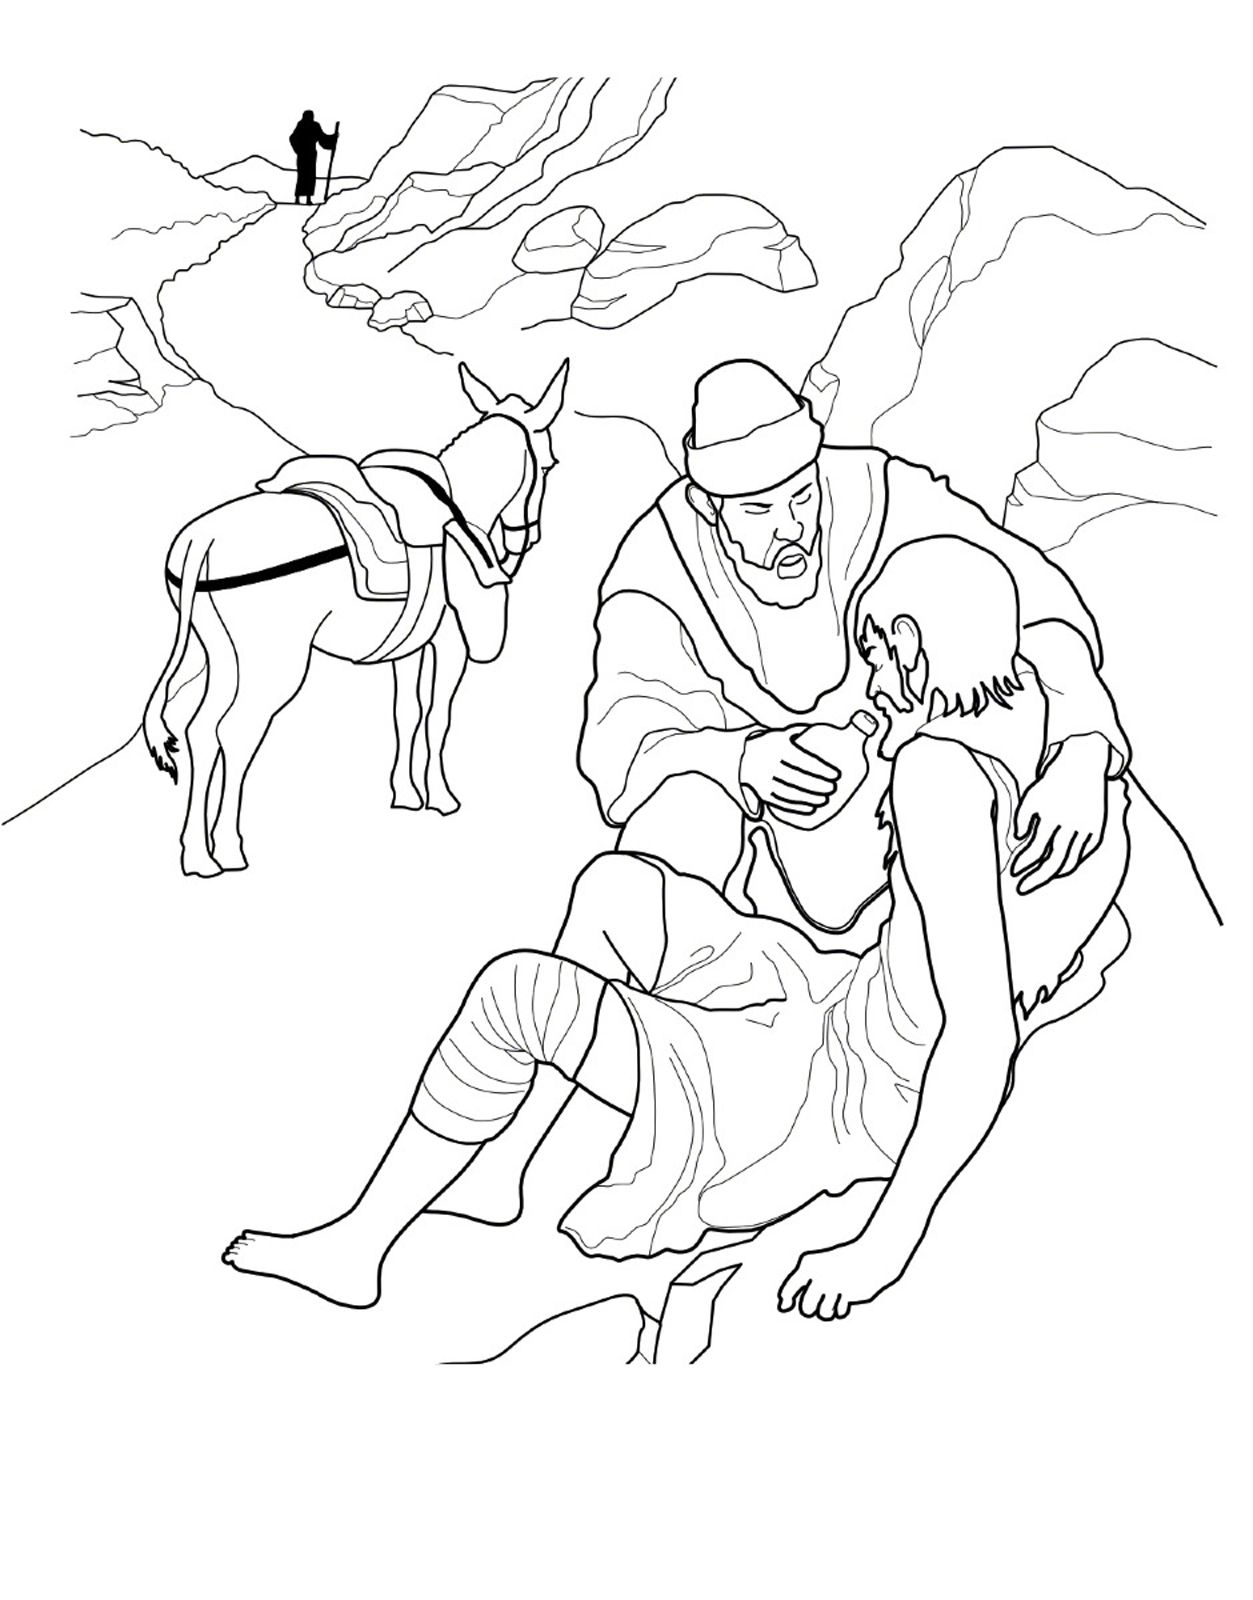 A coloring page for children of \